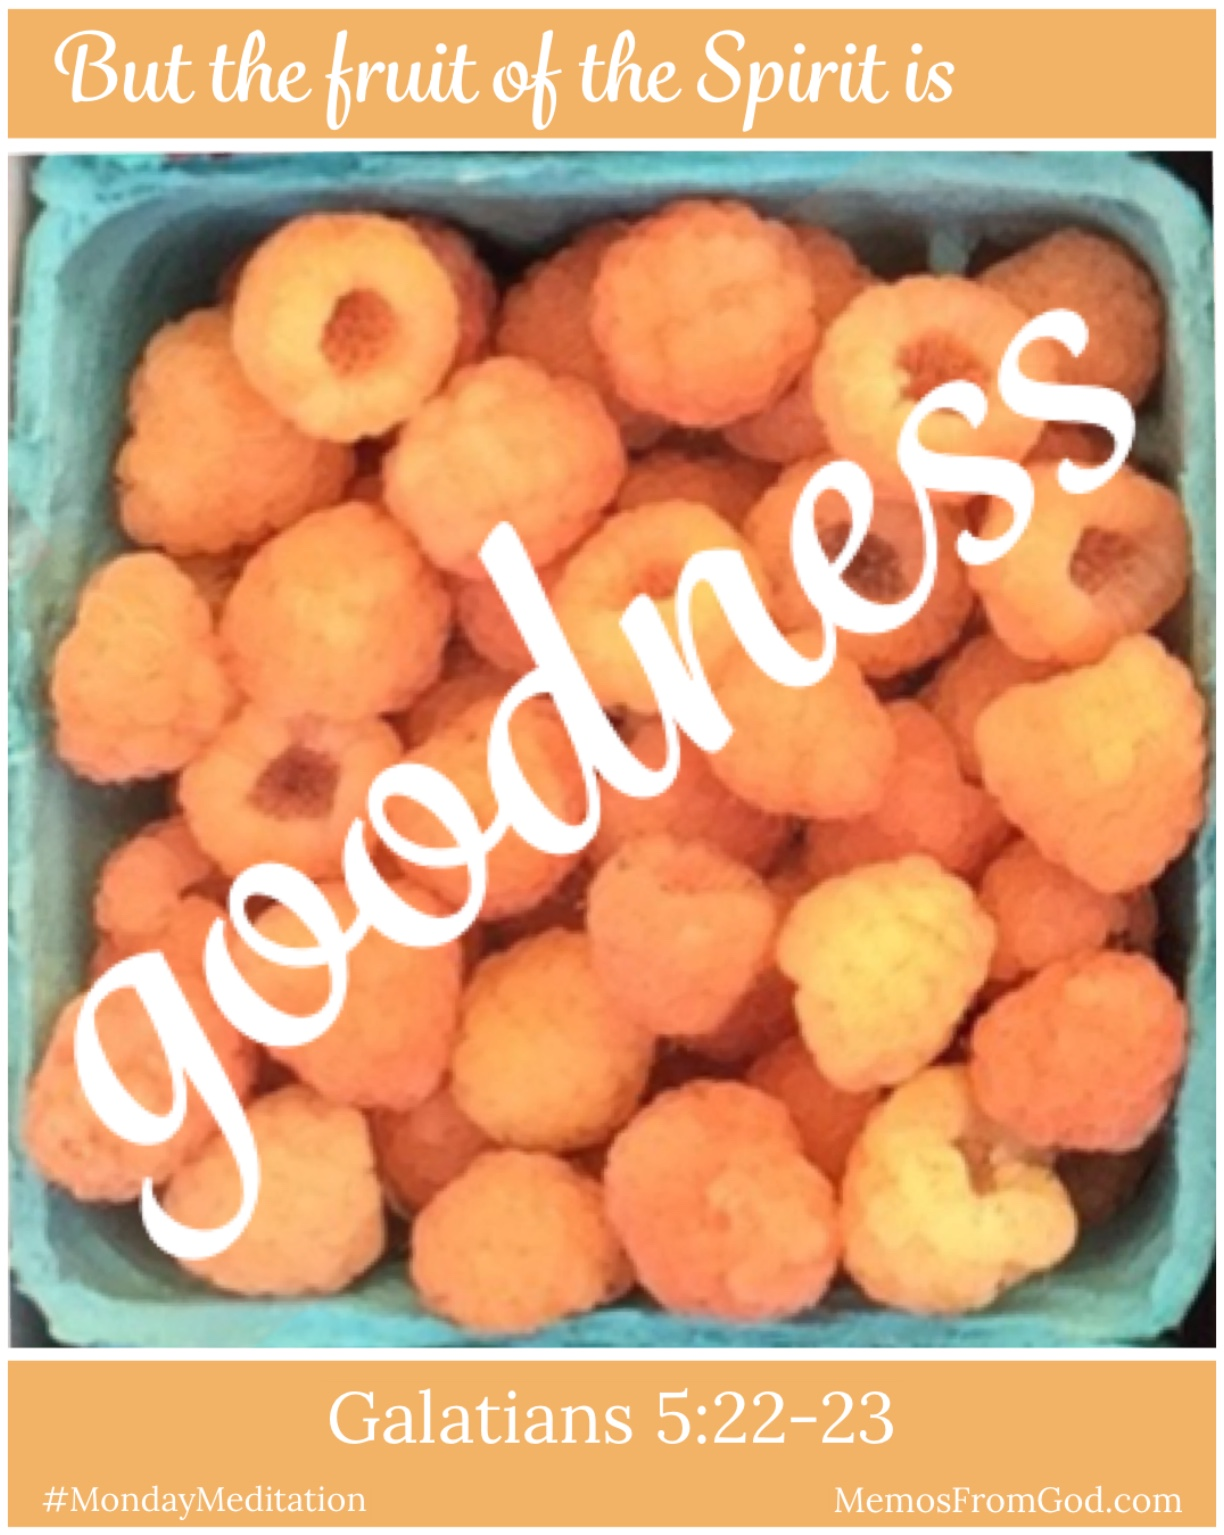 The top view of a pint box of golden raspberries. Caption: But the fruit of the Spirit is goodness. Galatians 5:22-23